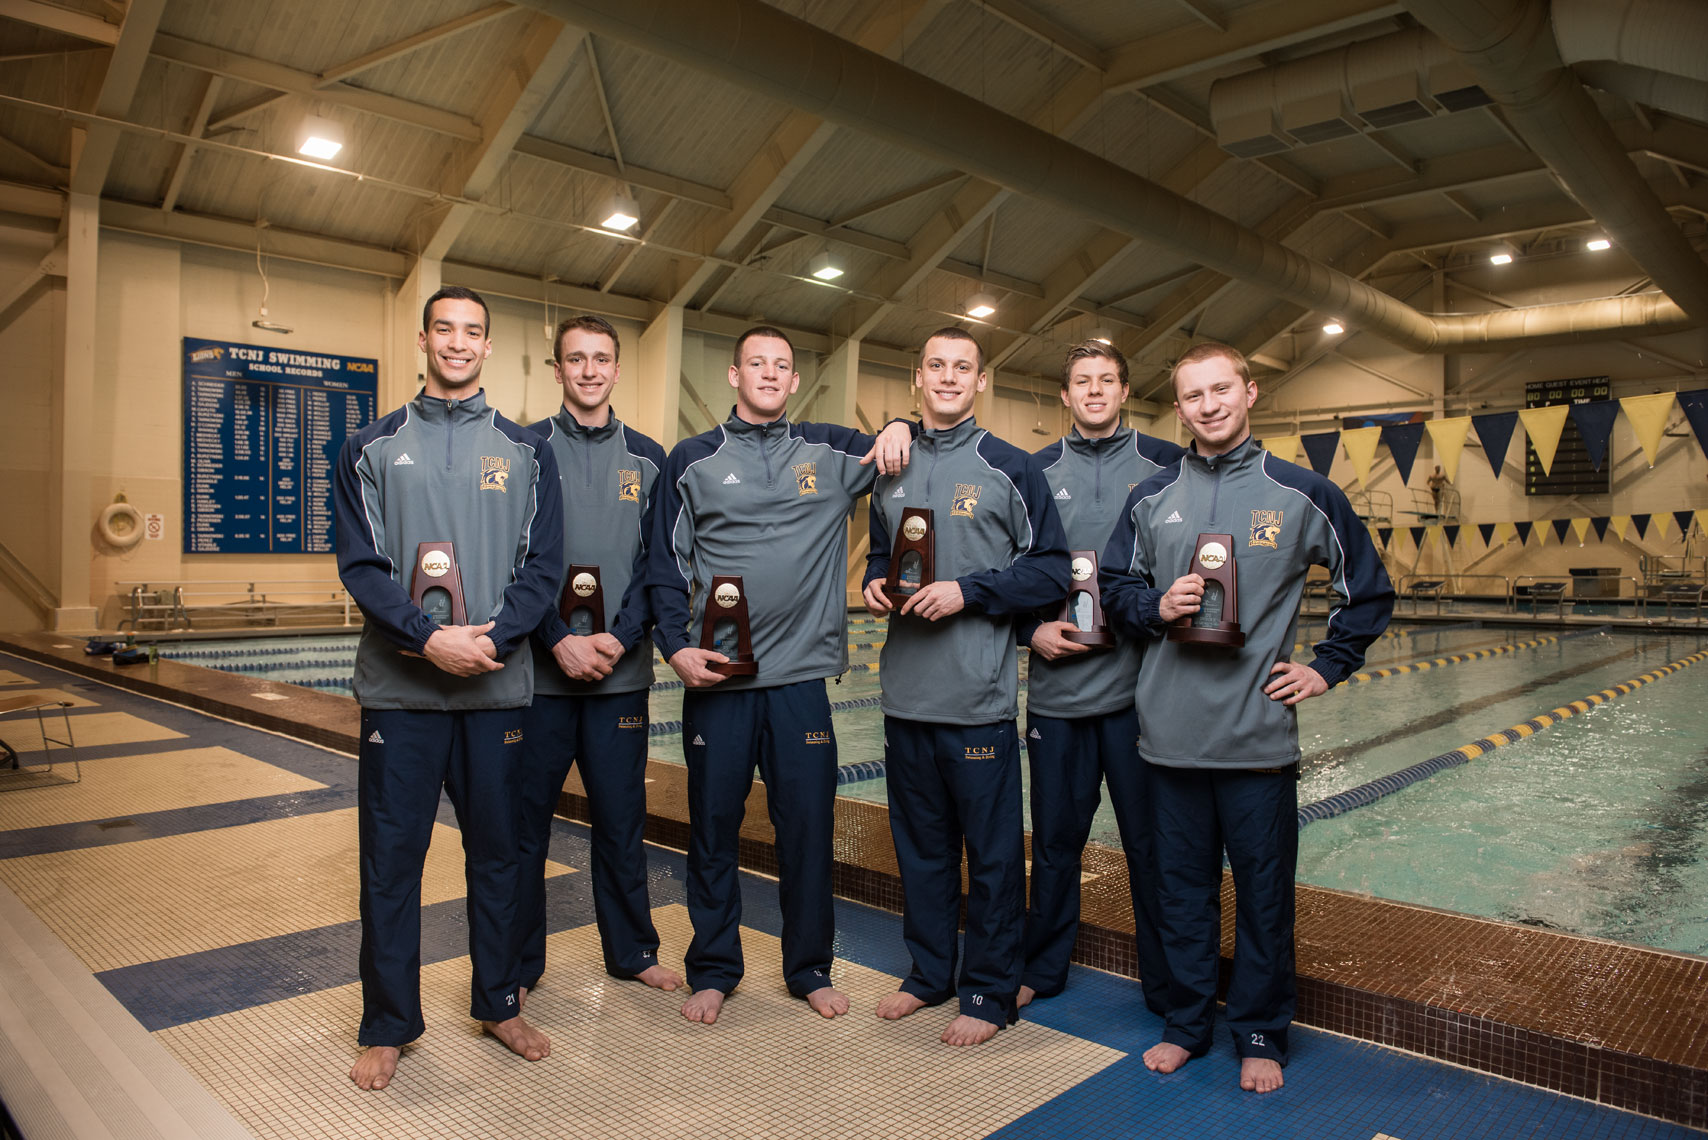 The TCNJ swim team holding their national championship plaques in front of a pool